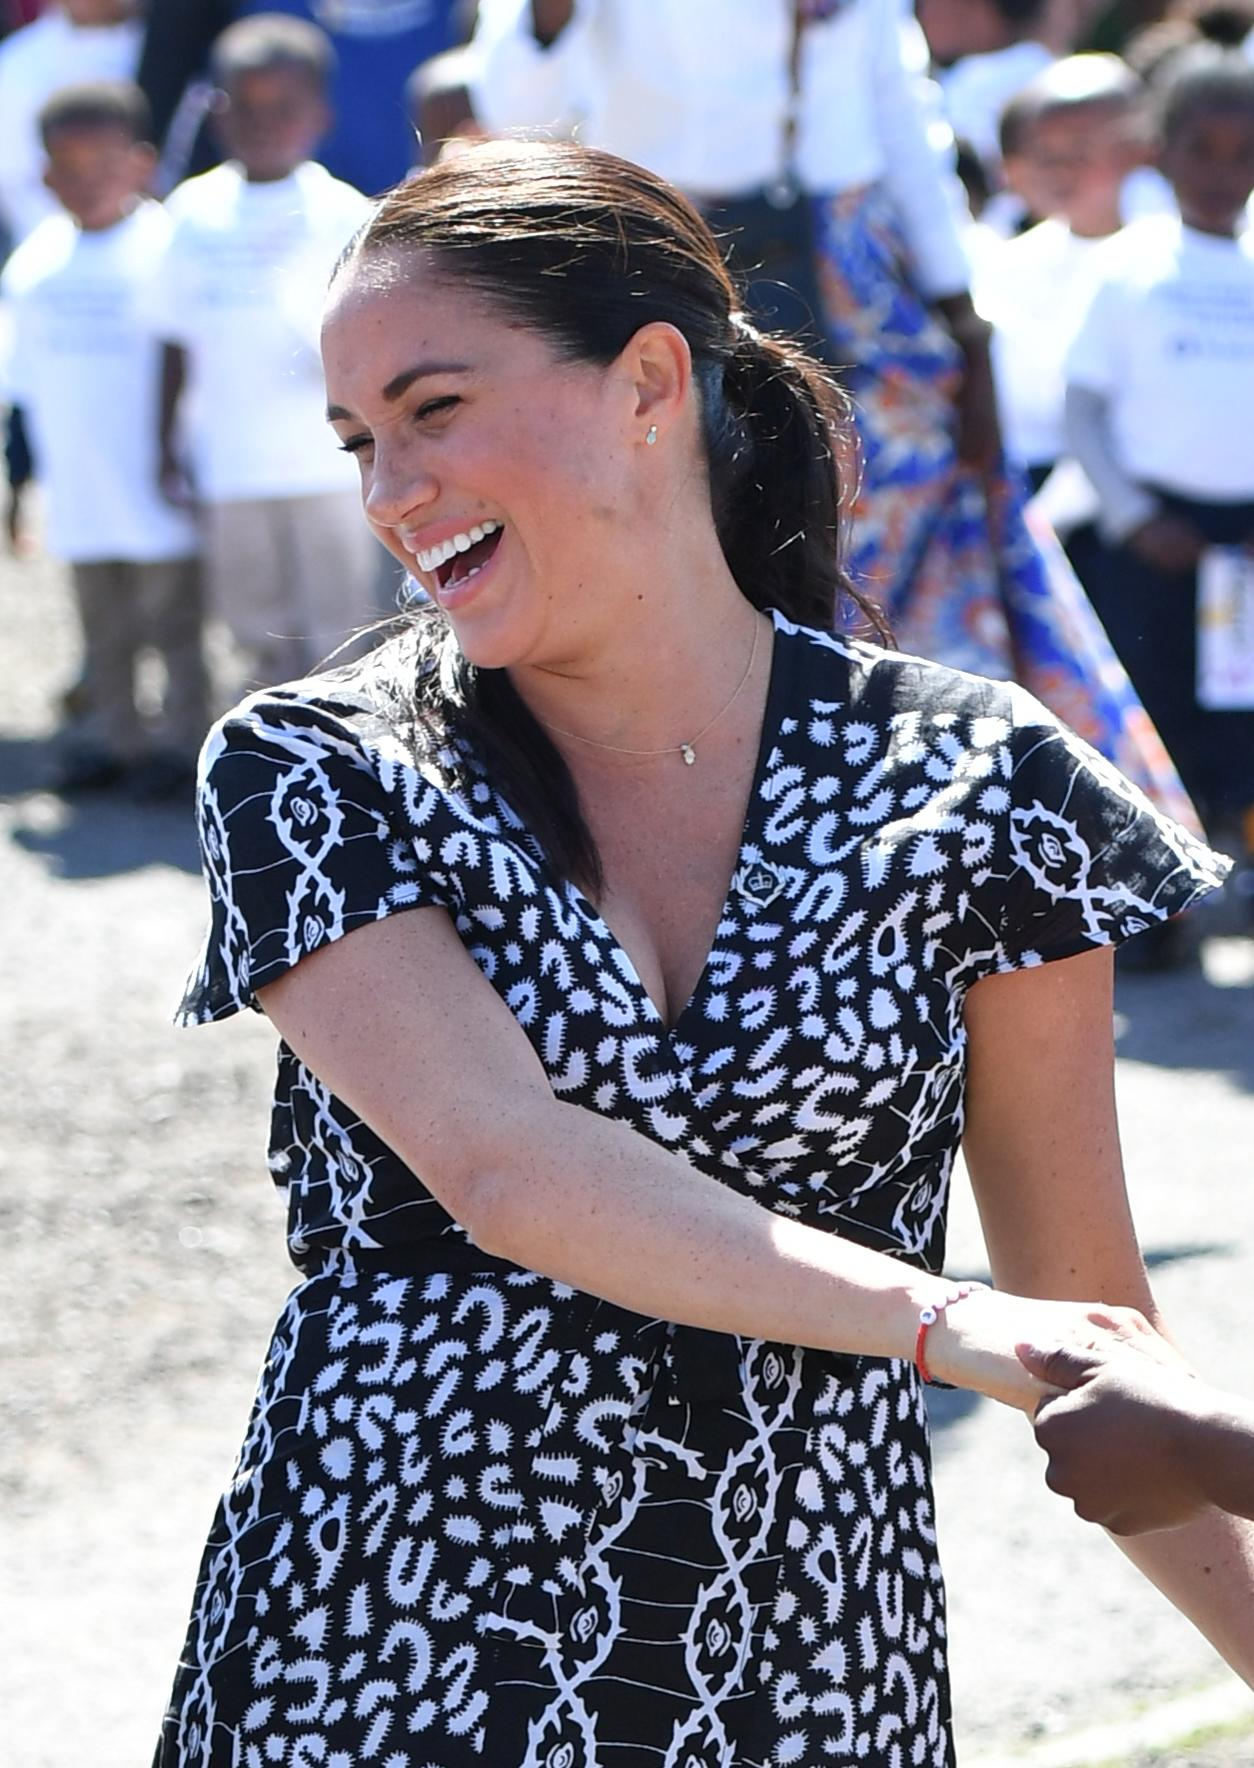 The Duchess of Sussex joins in with dancers as she leaves the Nyanga Township in Cape Town, South Africa, on the first day of their tour of Africa. (Photo by Dominic Lipinski/PA Images via Getty Images)